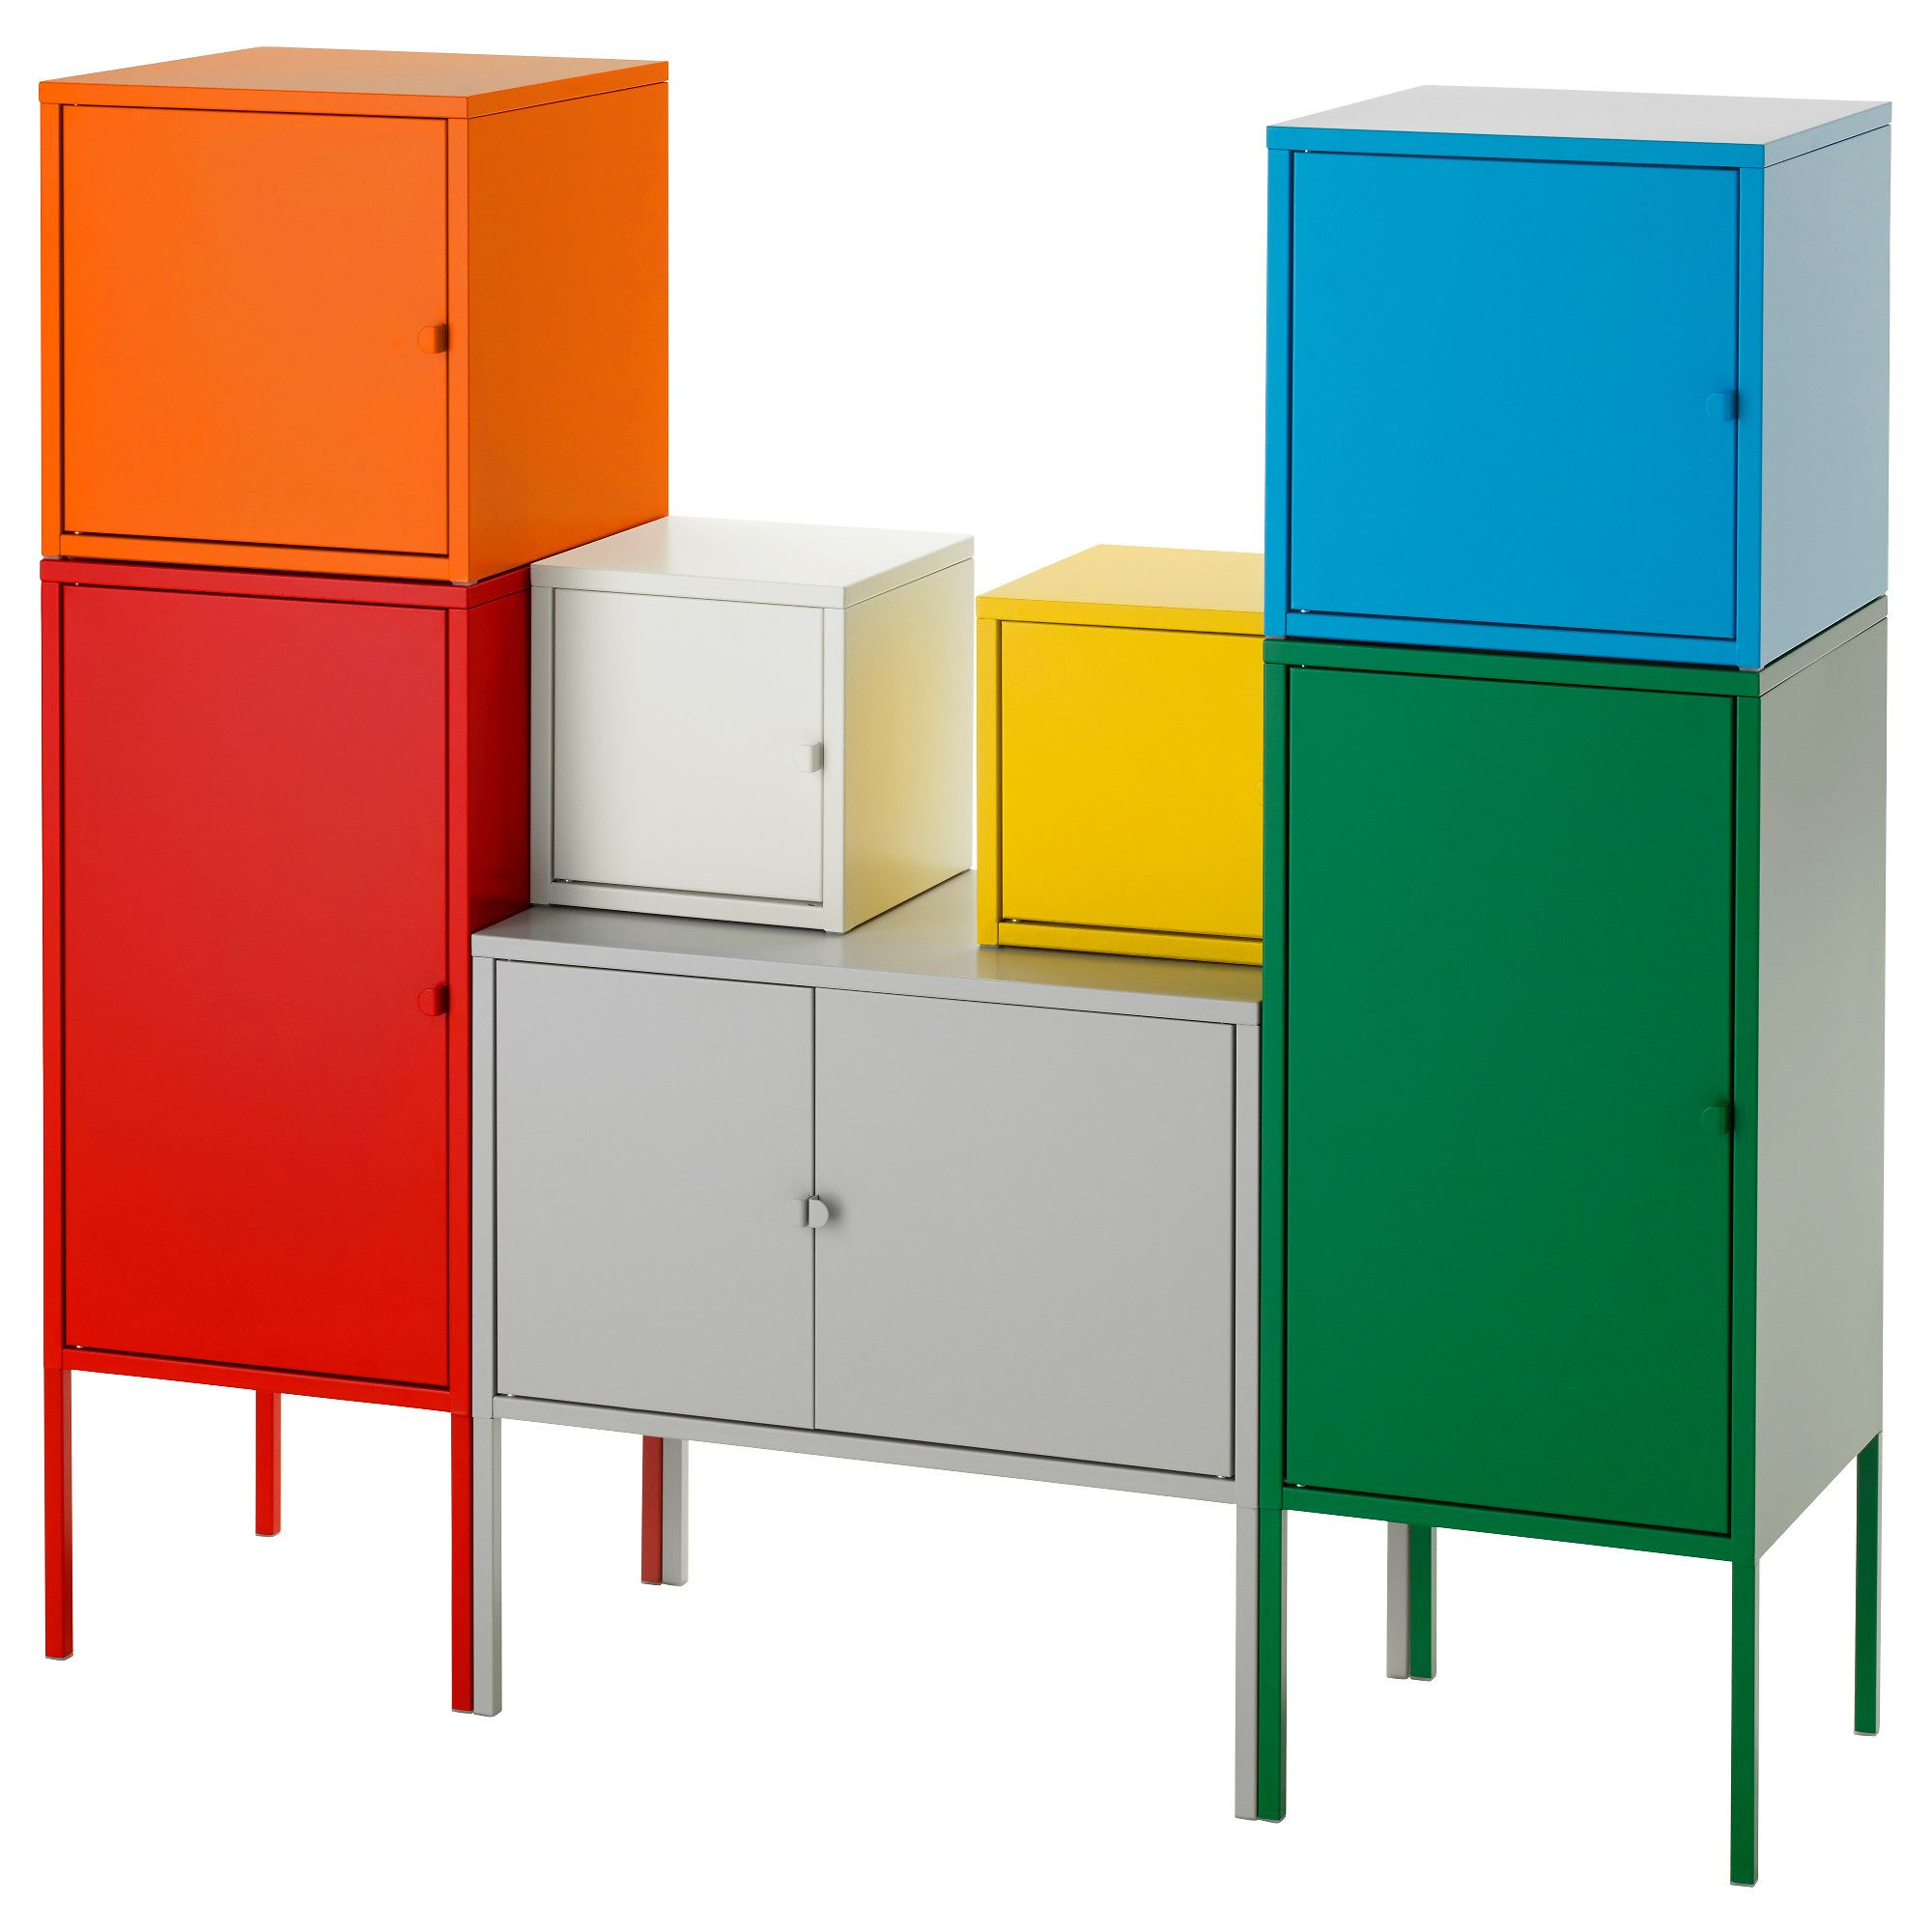 Ikea Lixhult Storage Combination A Colorful And Complete